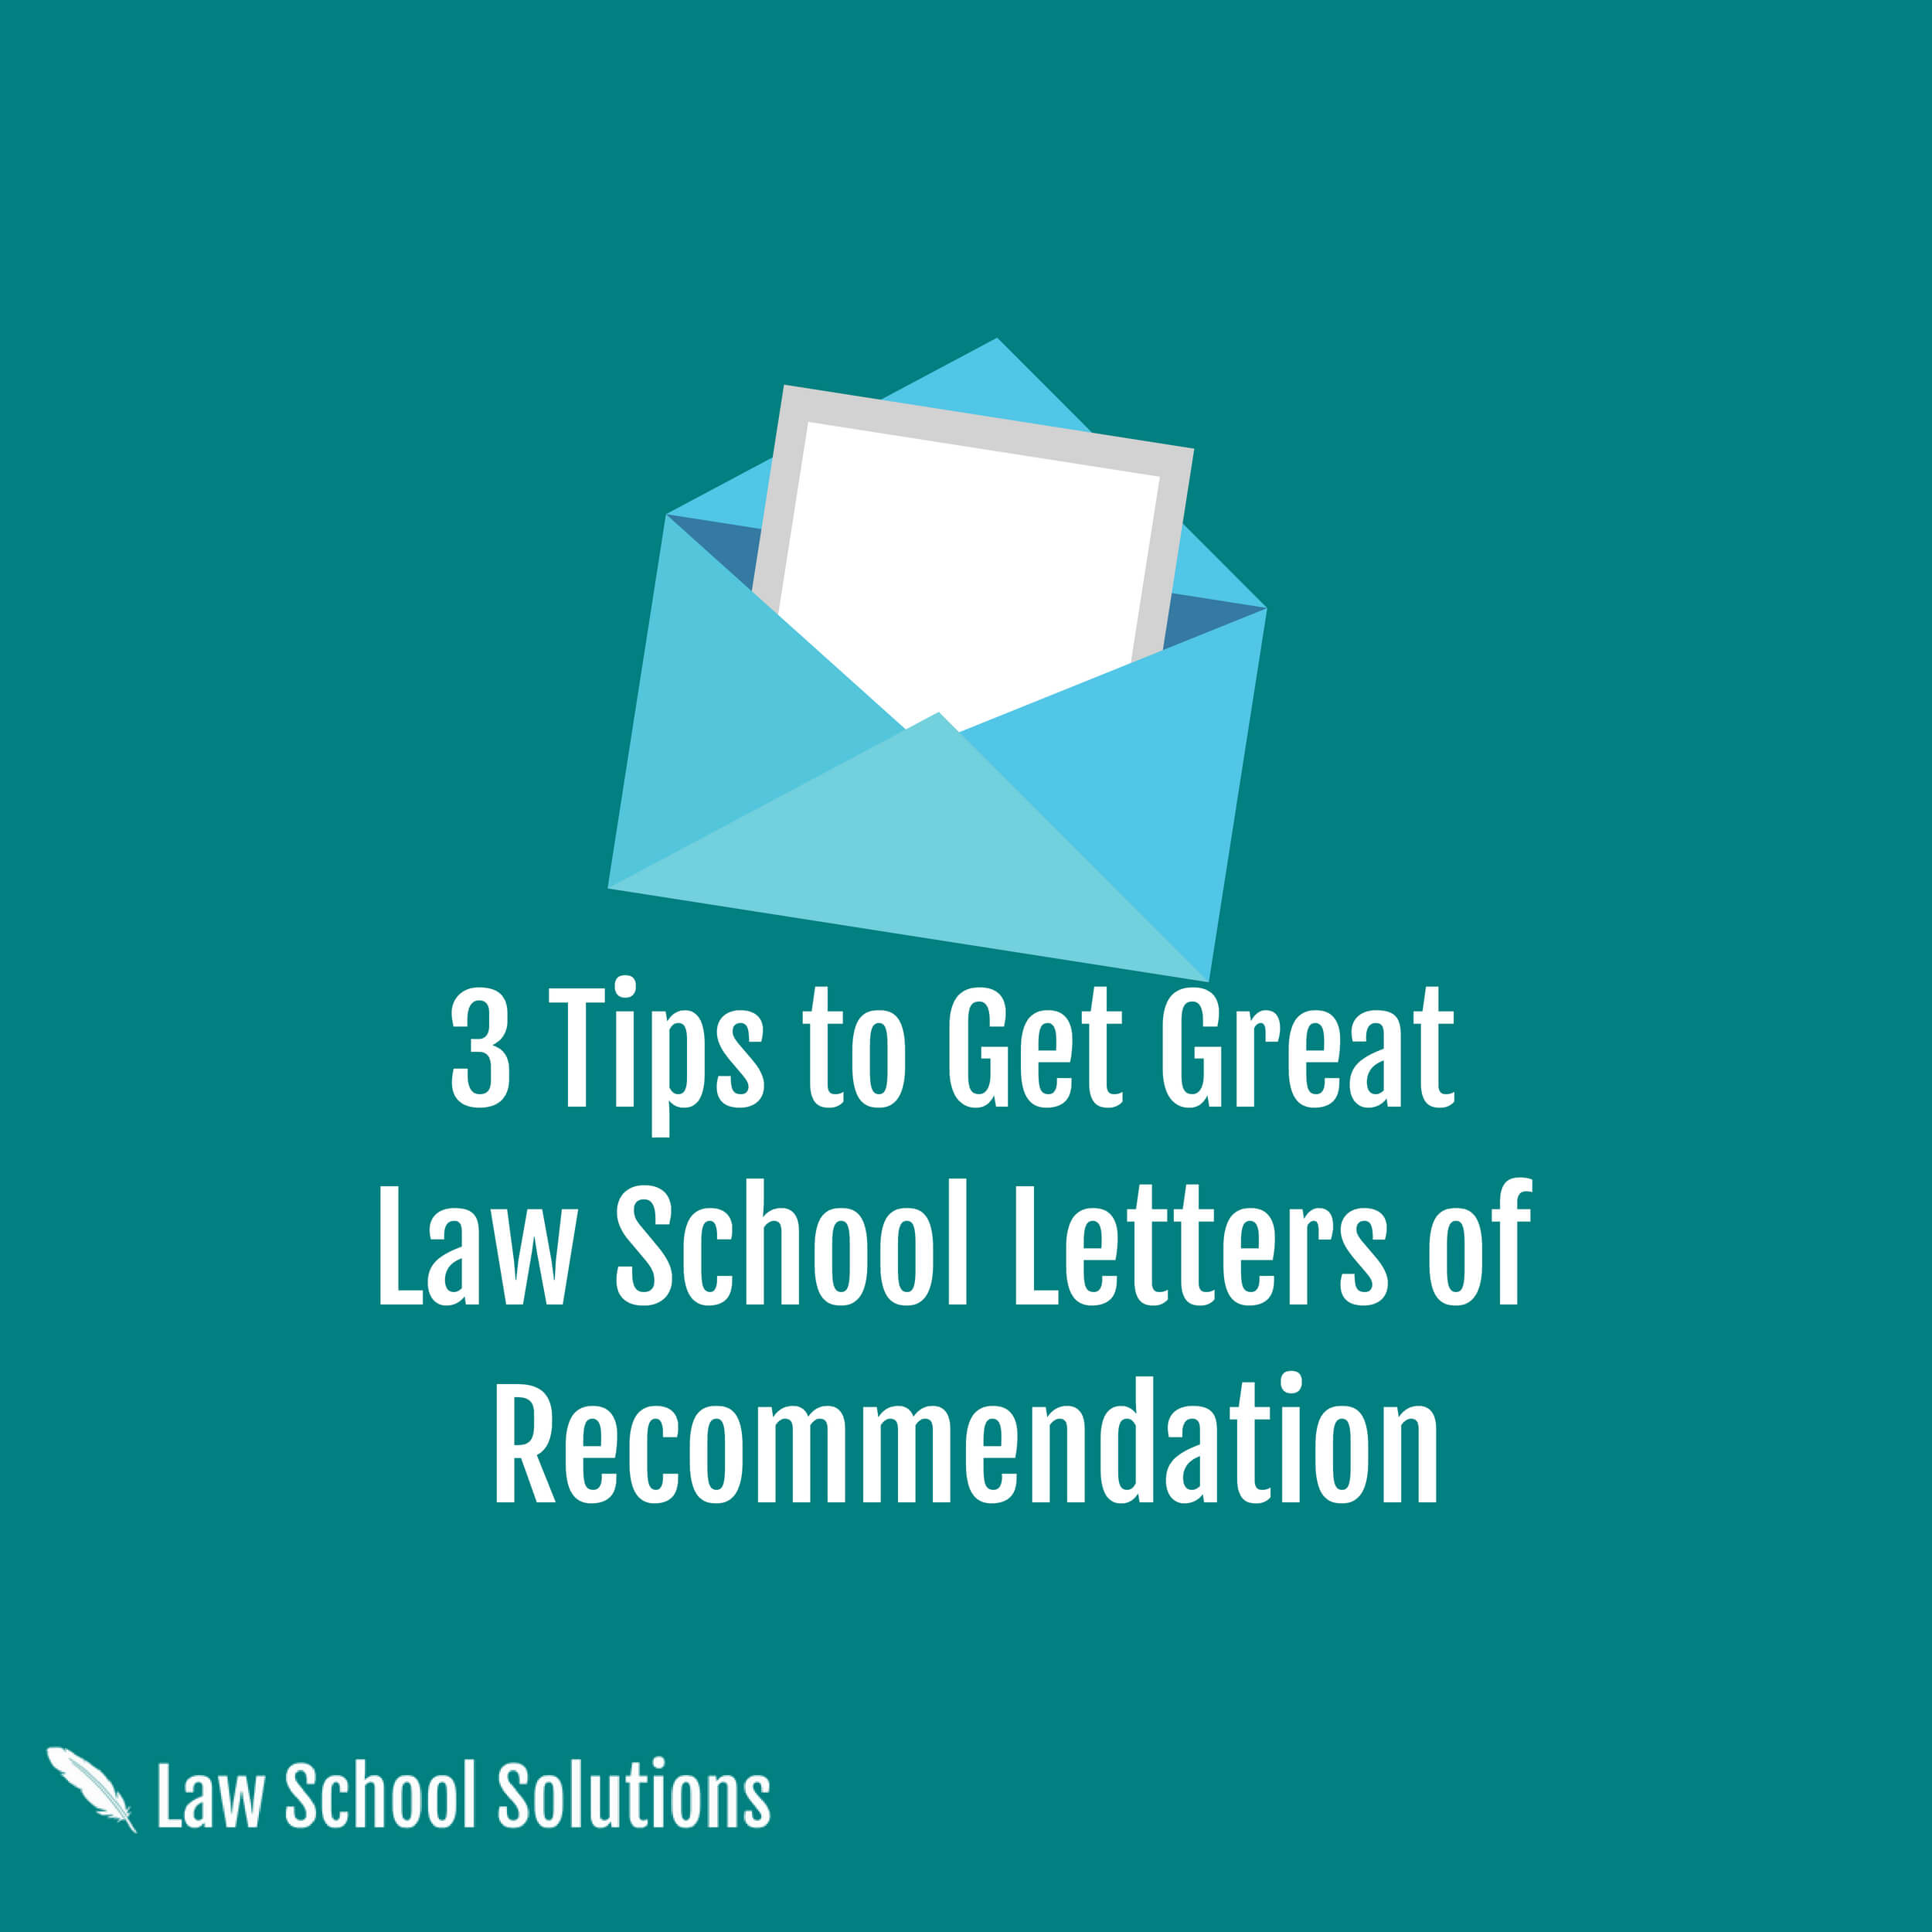 3-tips-to-get-great-law-school-letters-of-recommnedation